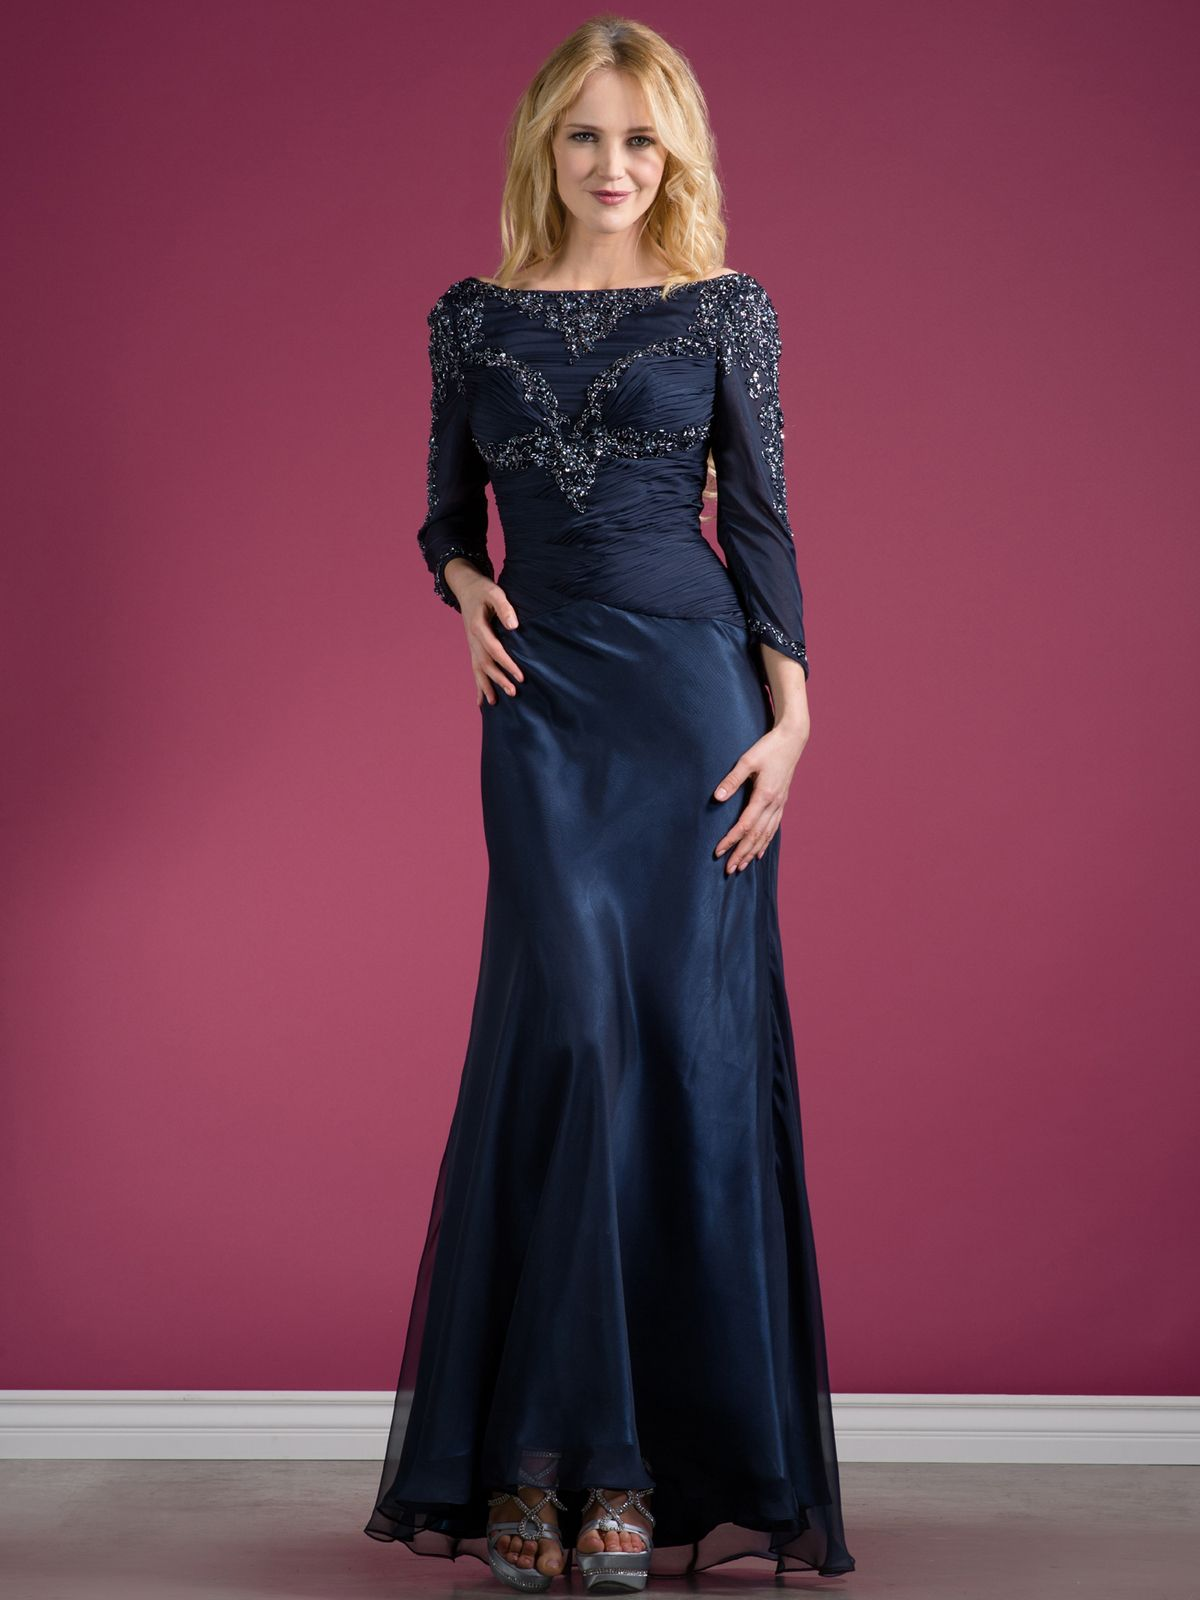 Long elegant formal dresses